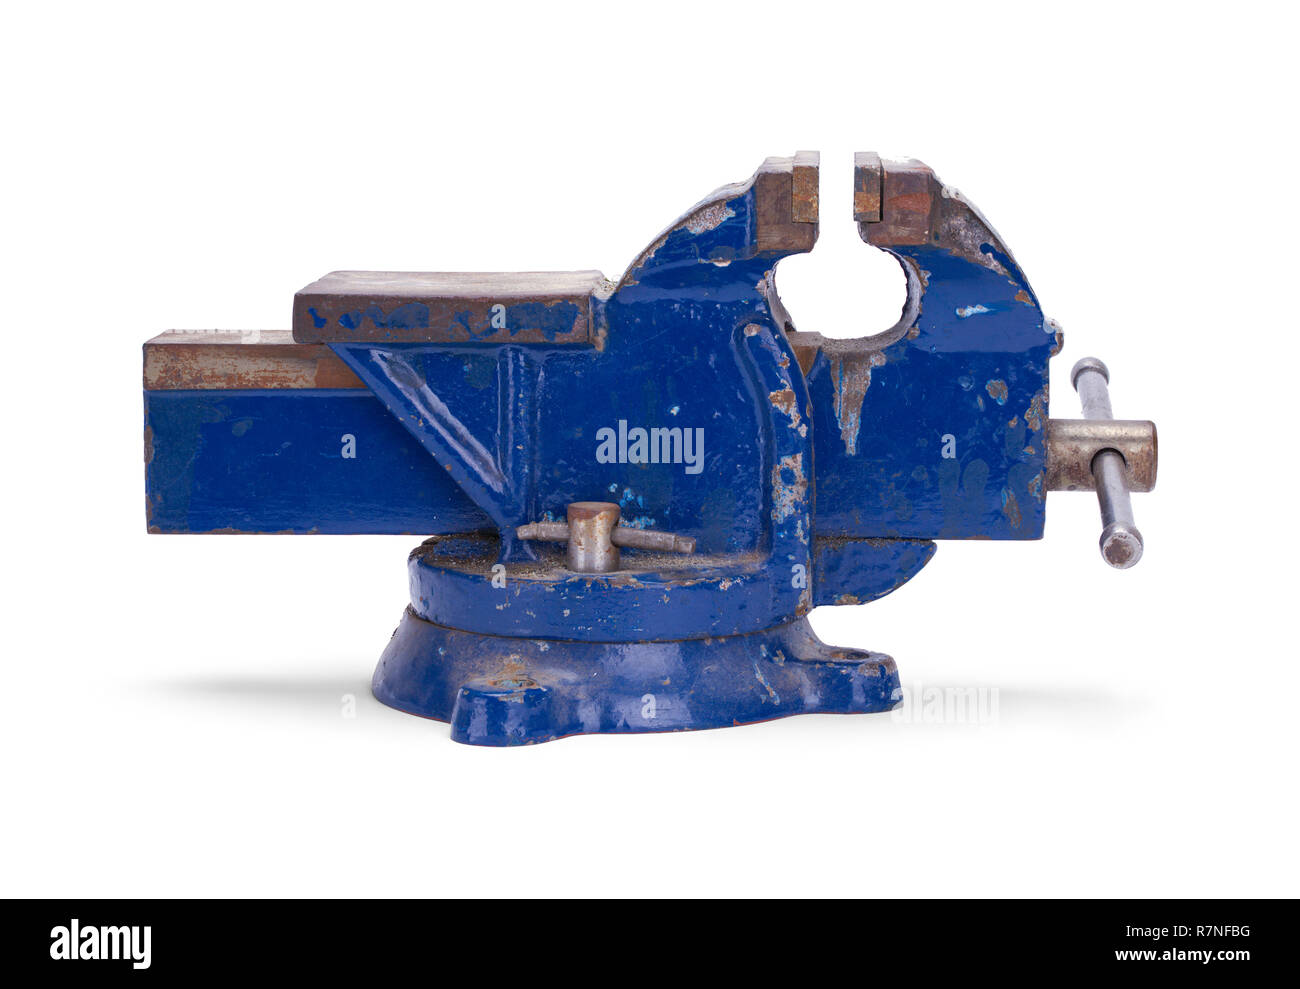 Worn Blue Anvil Vise Clamp Isolated on a White Background. - Stock Image